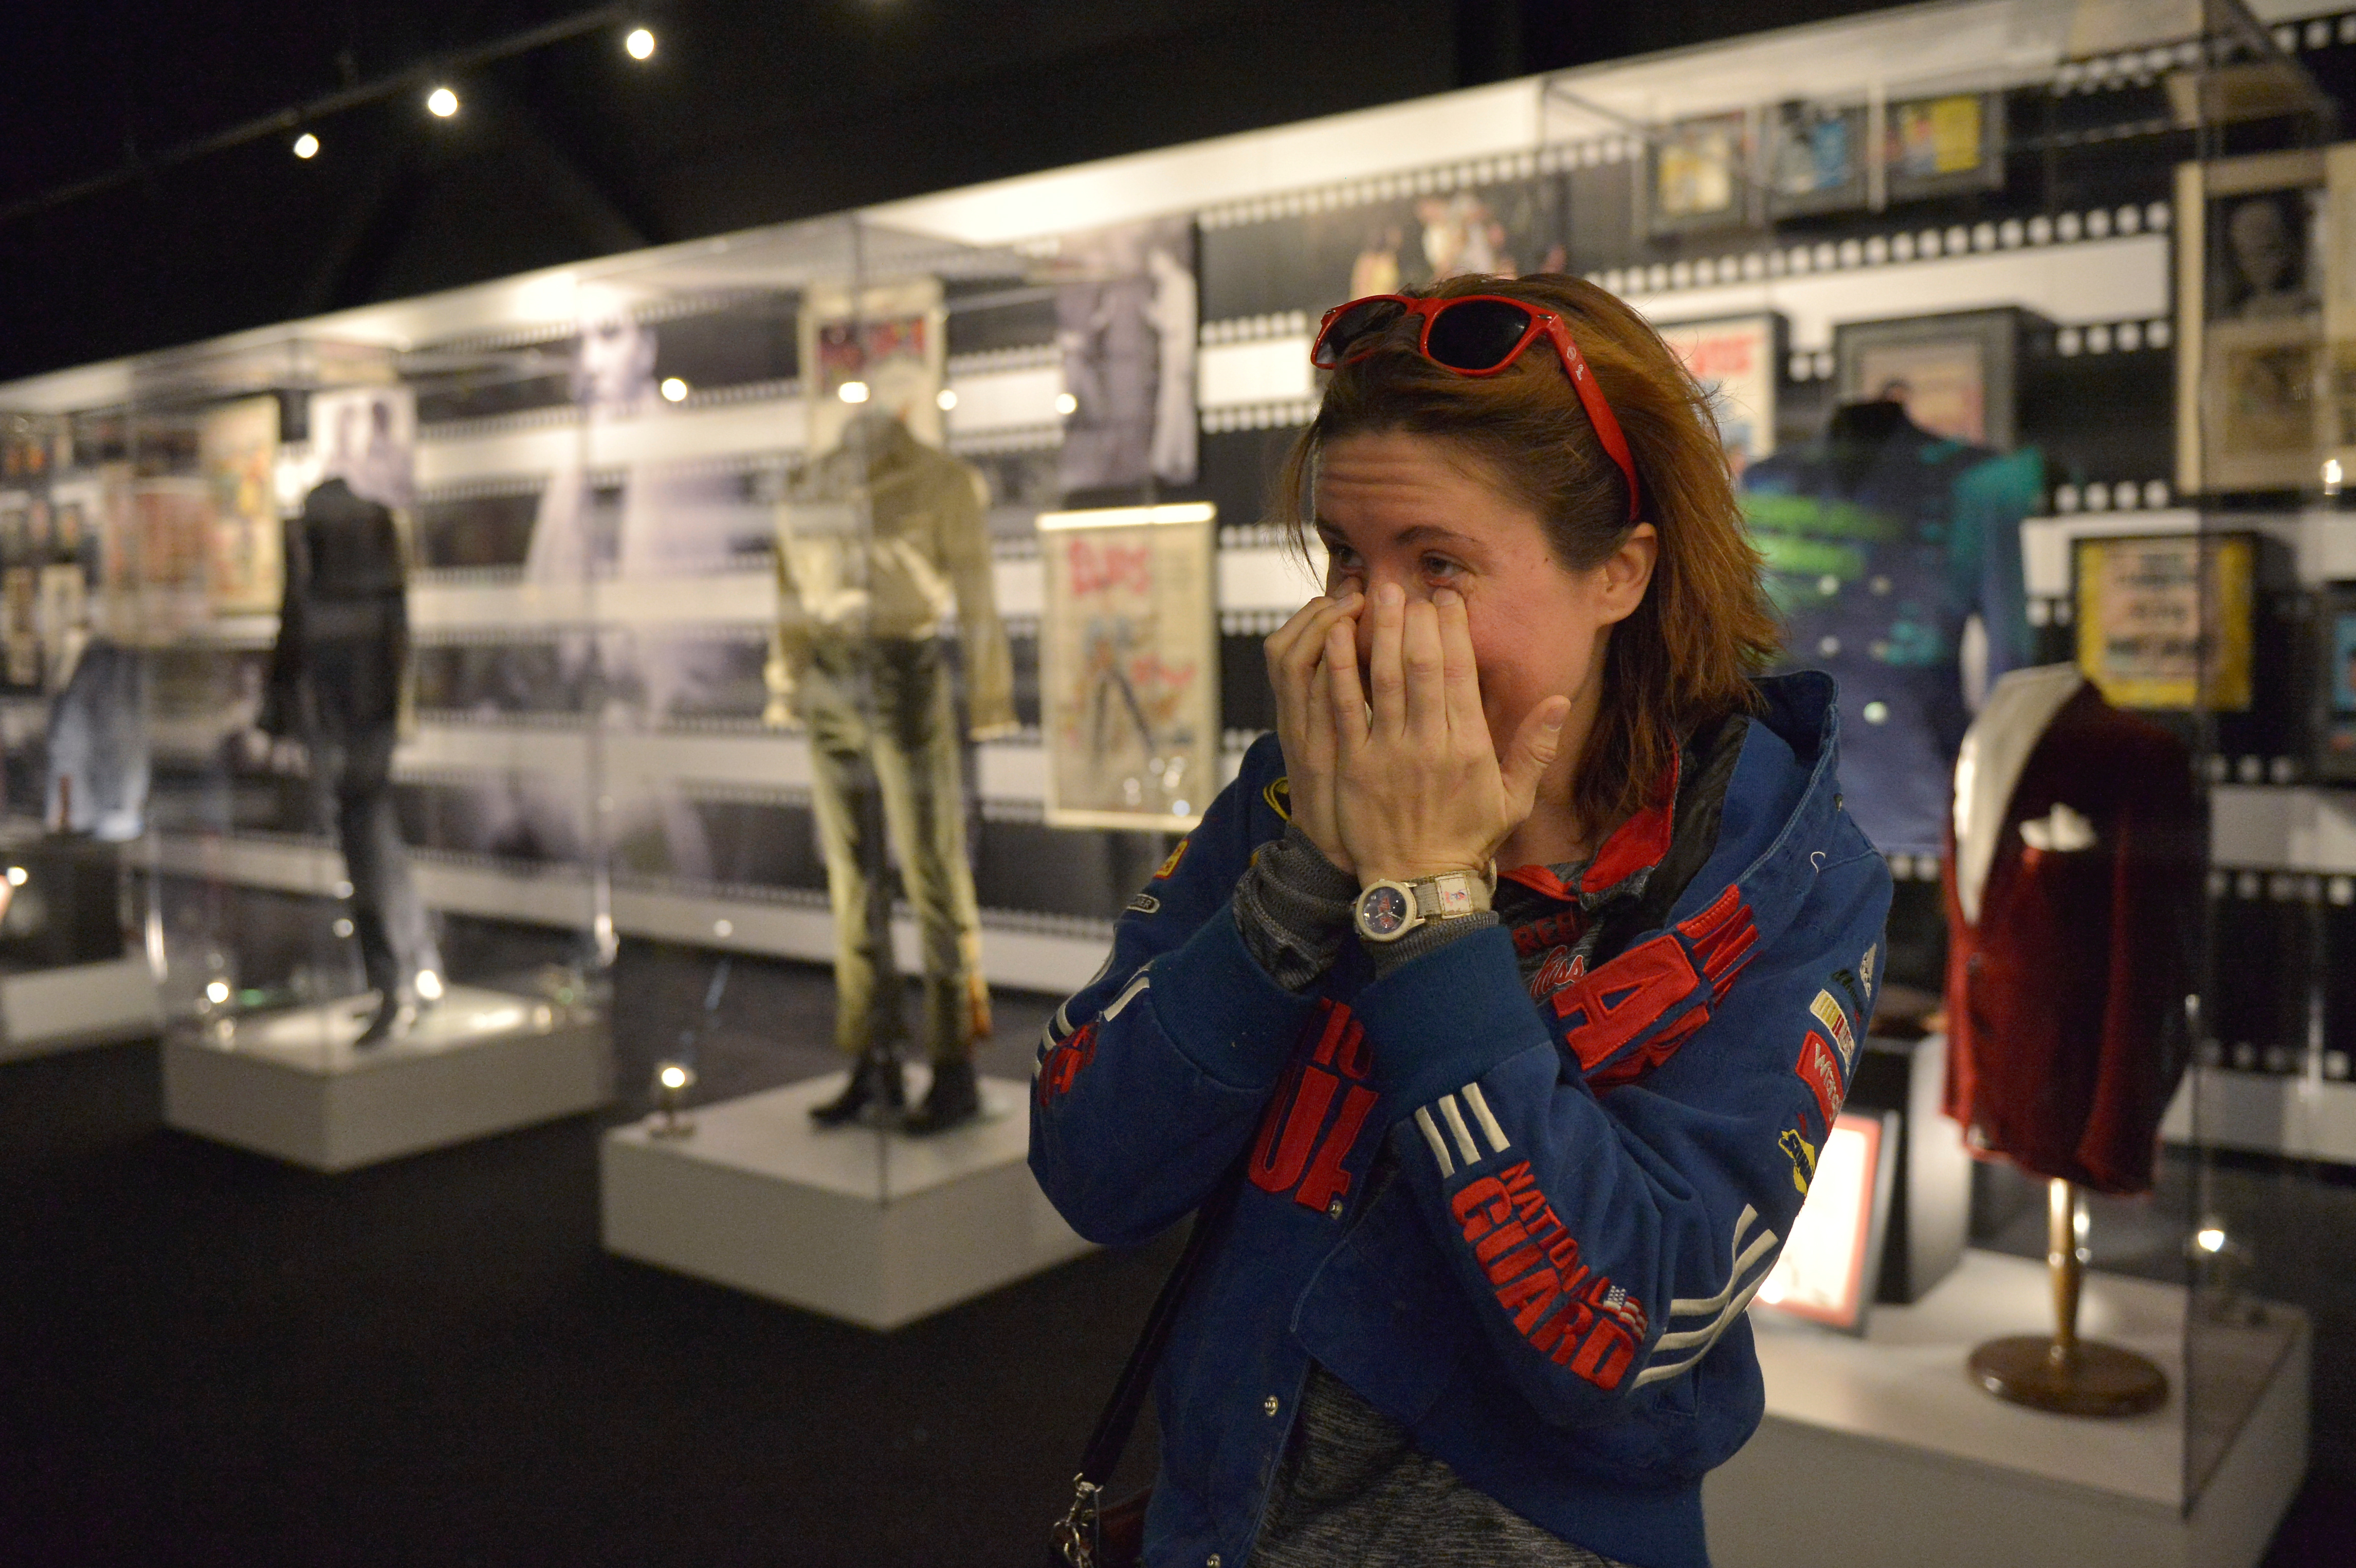 Laura Hallstrom of Olive Branch, Mississippi, tears up after meeting Priscilla Presley, Elvis' wife. Photo by Brandon Dill/Reuters